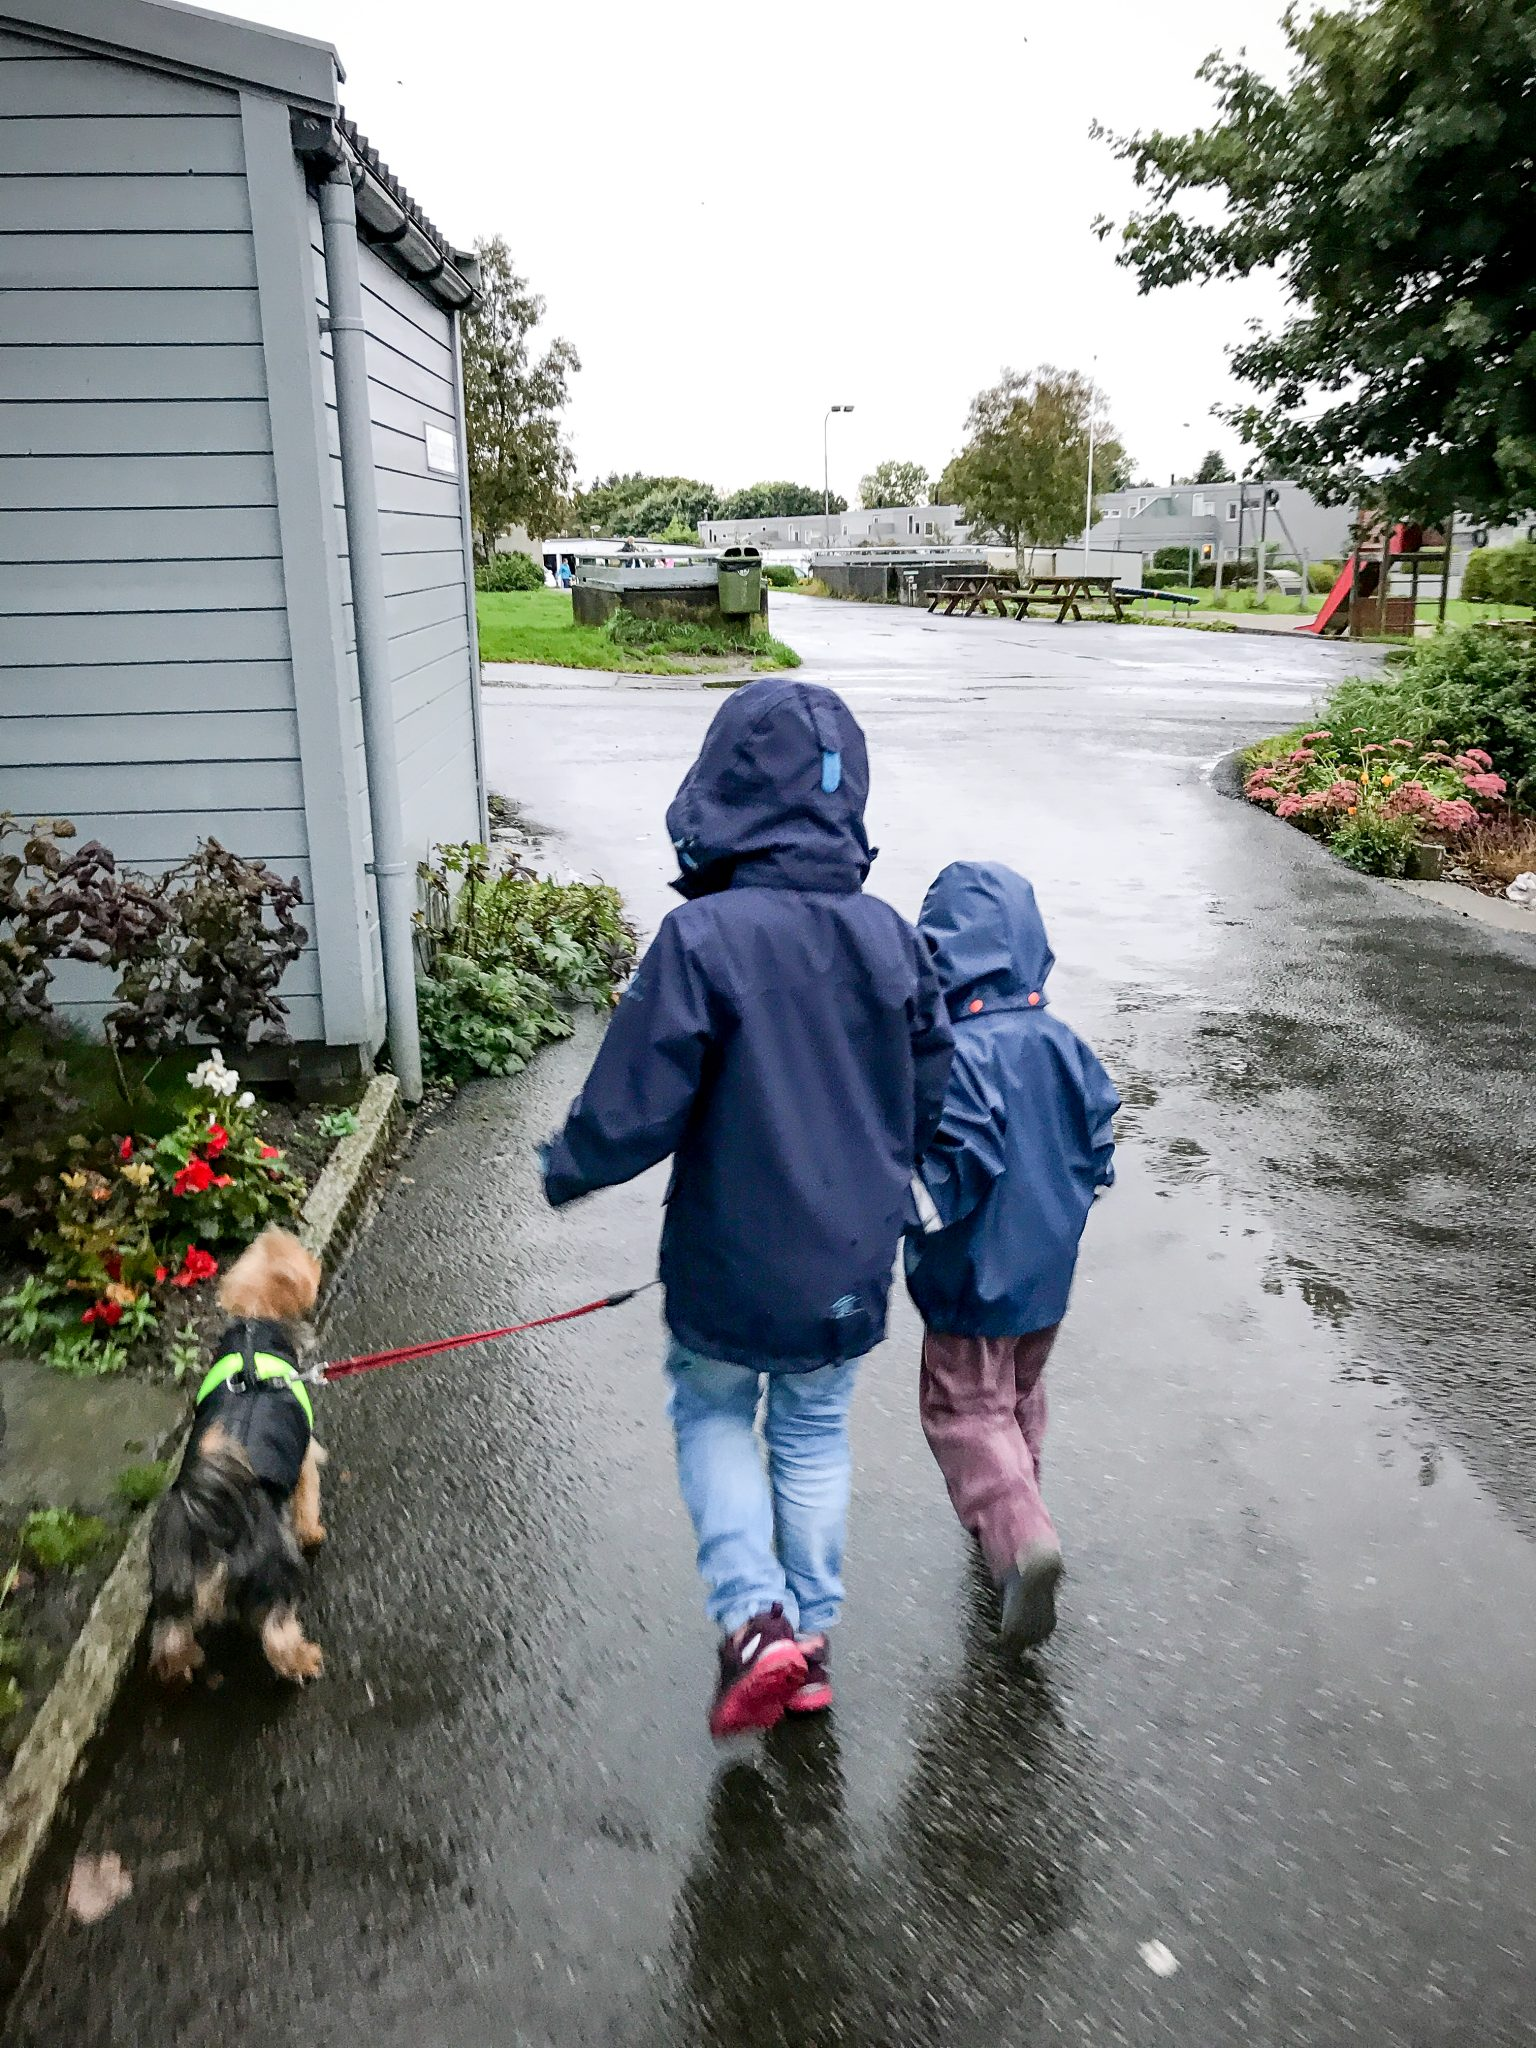 Two young children walking a small dog in the rain